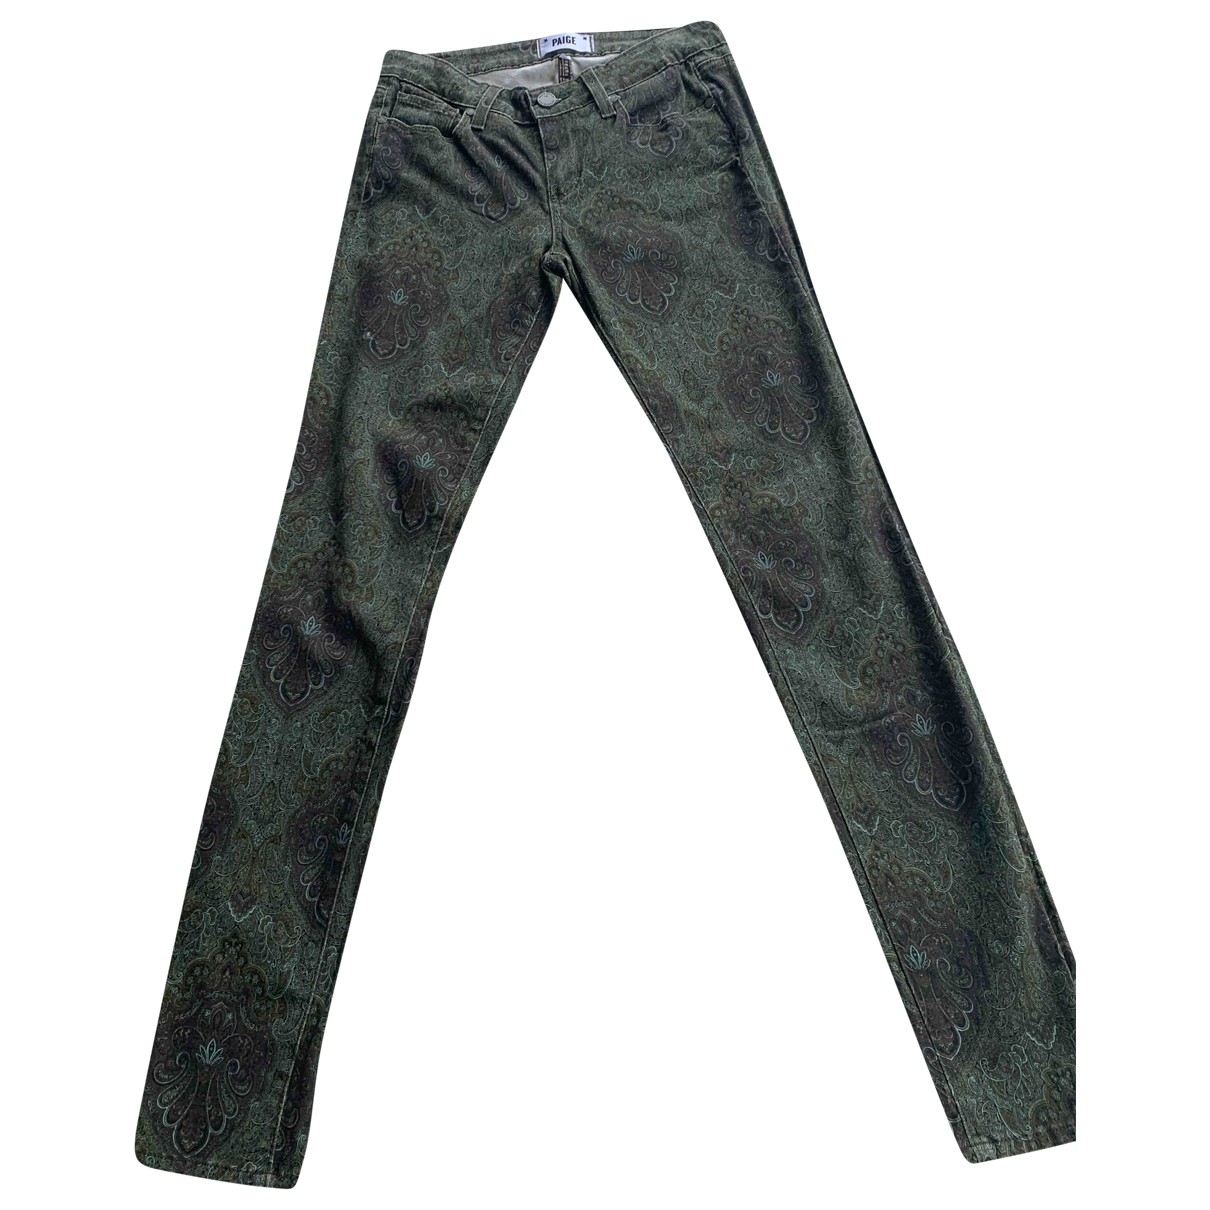 Paige Jeans \N Green Cotton - elasthane Jeans for Women 34 FR